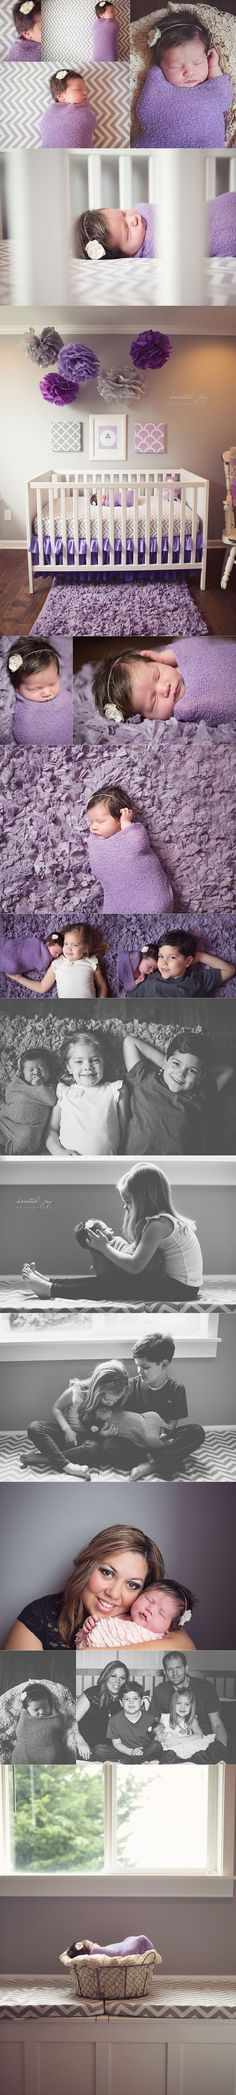 First I noticed the adorable baby in the dreamiest purple and grey nursery ever. Then I thought OMG!! these are some of the cutest new born pics!! I love the one of the baby and big sissy holding her